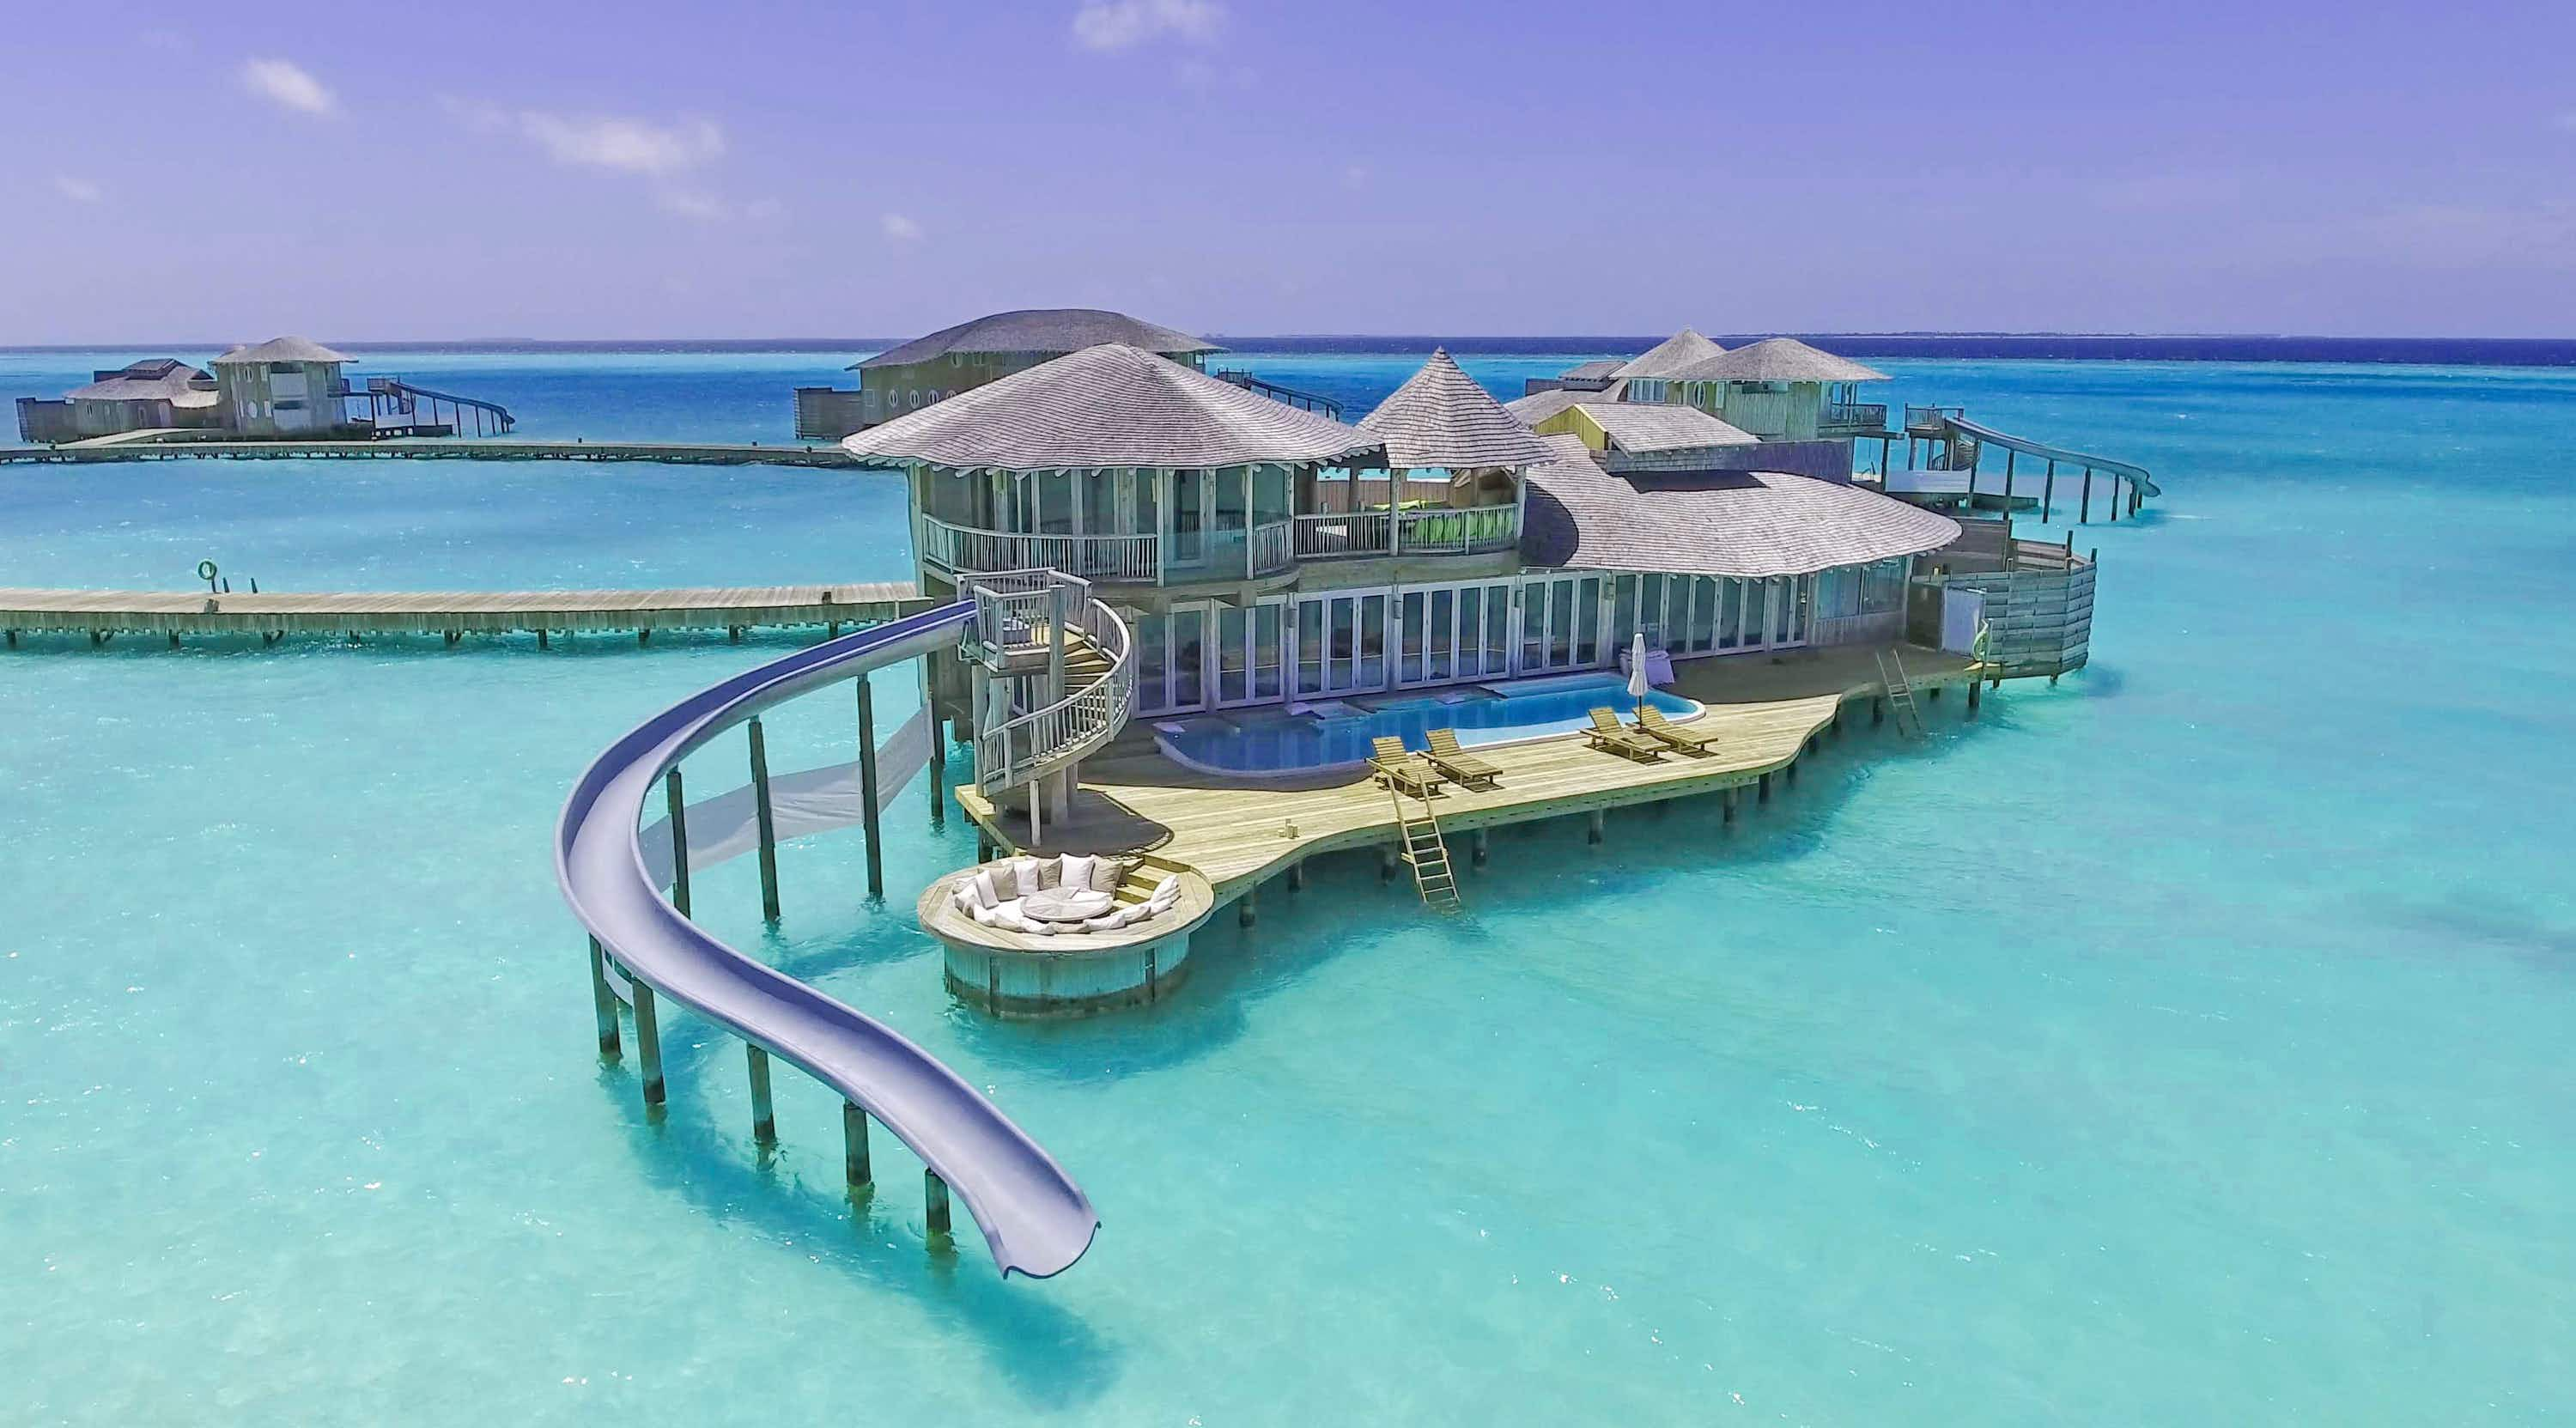 These villas in the Maldives have slides to take you right into the water